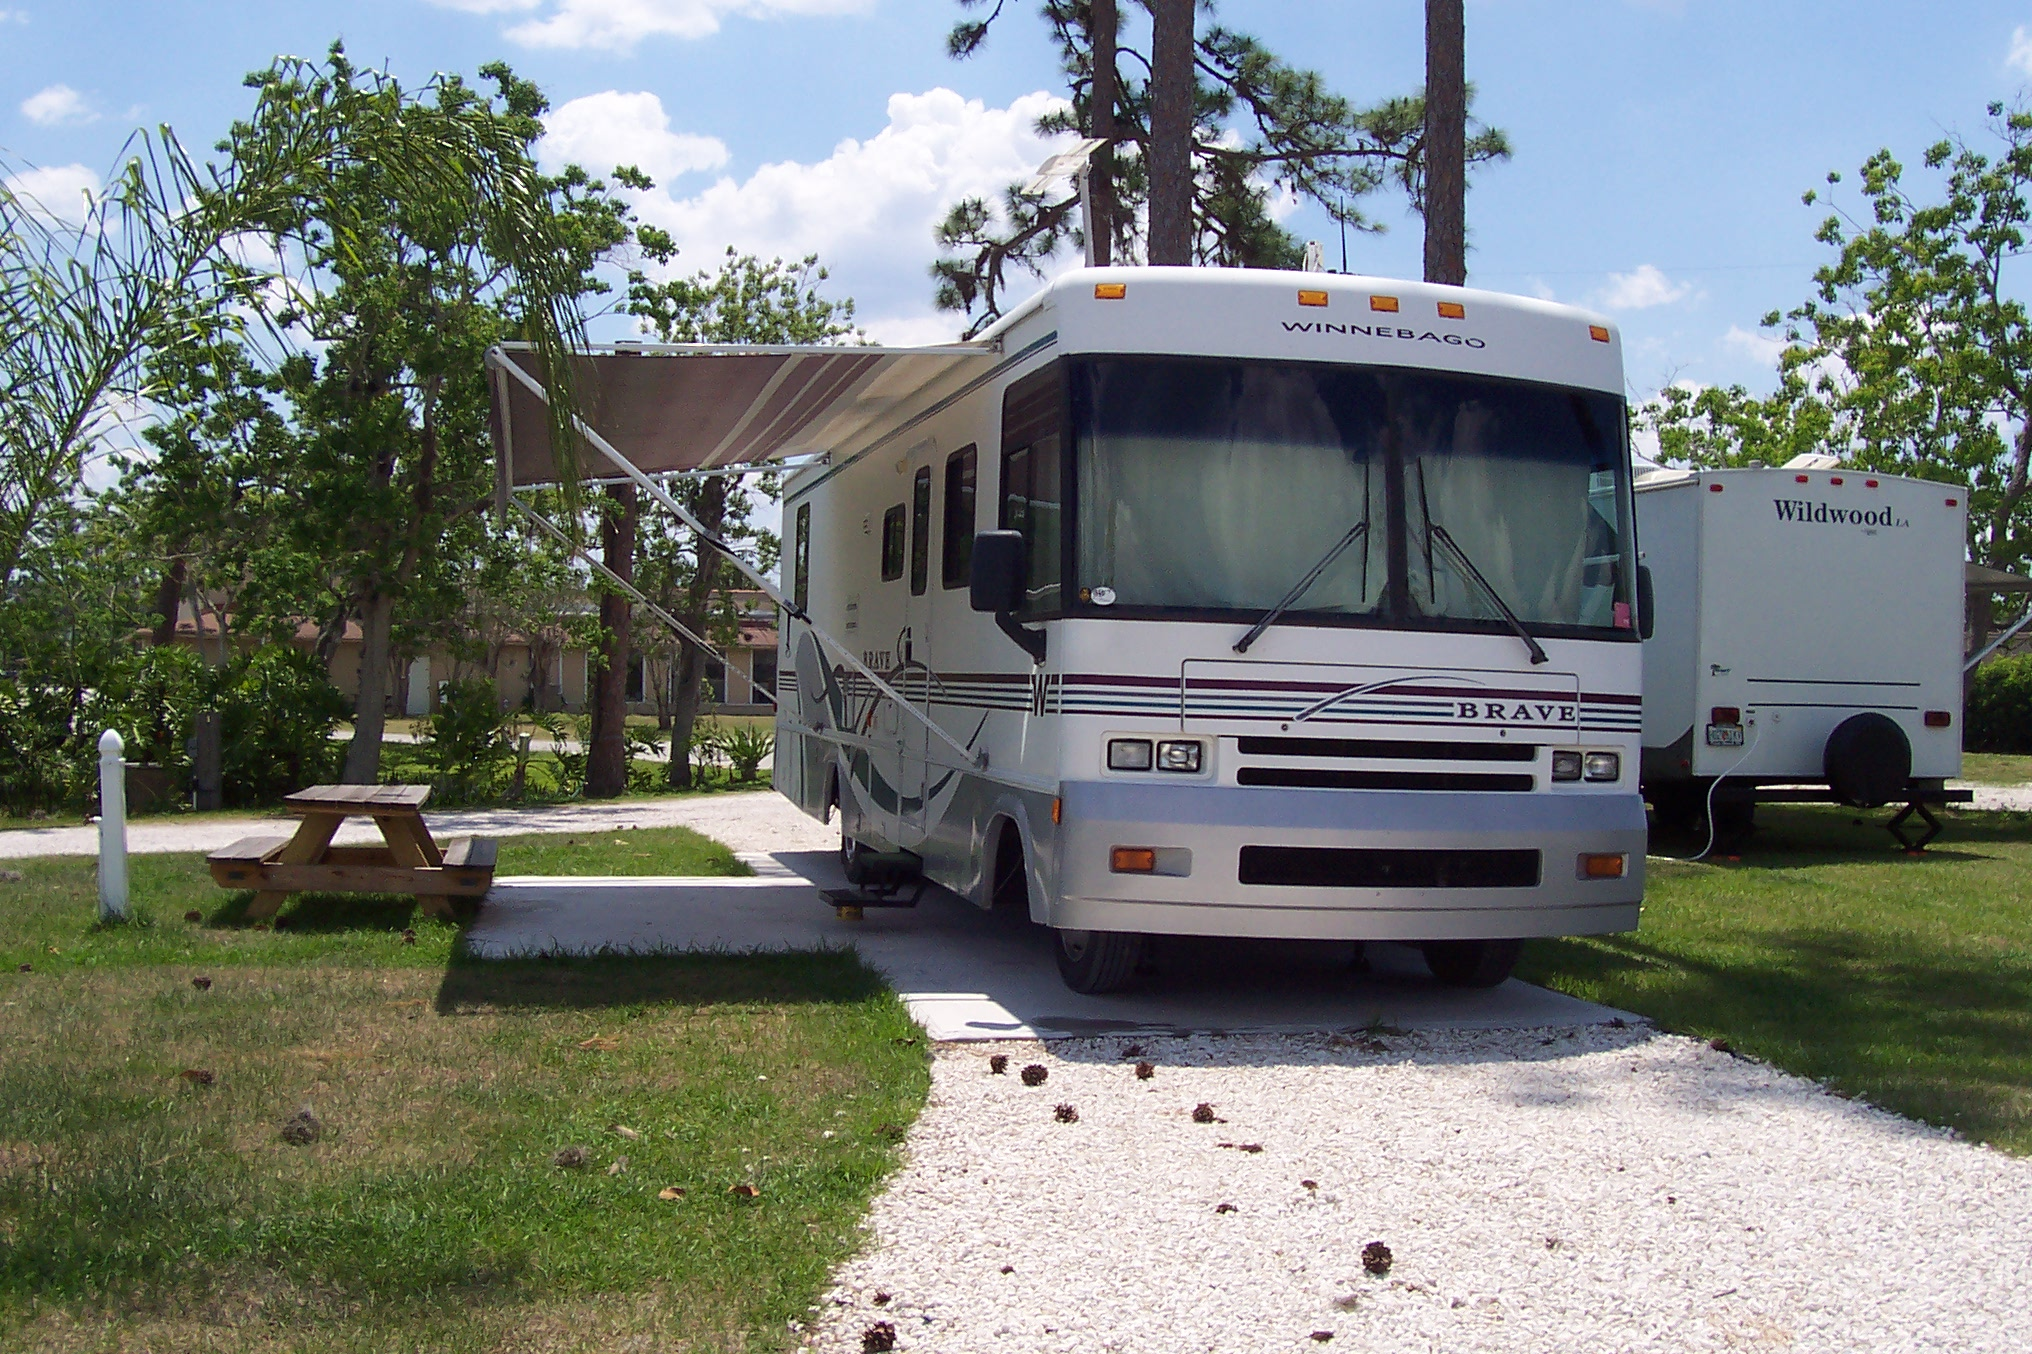 orlando florida rv camping sites orlando se lake whippoorwill koa